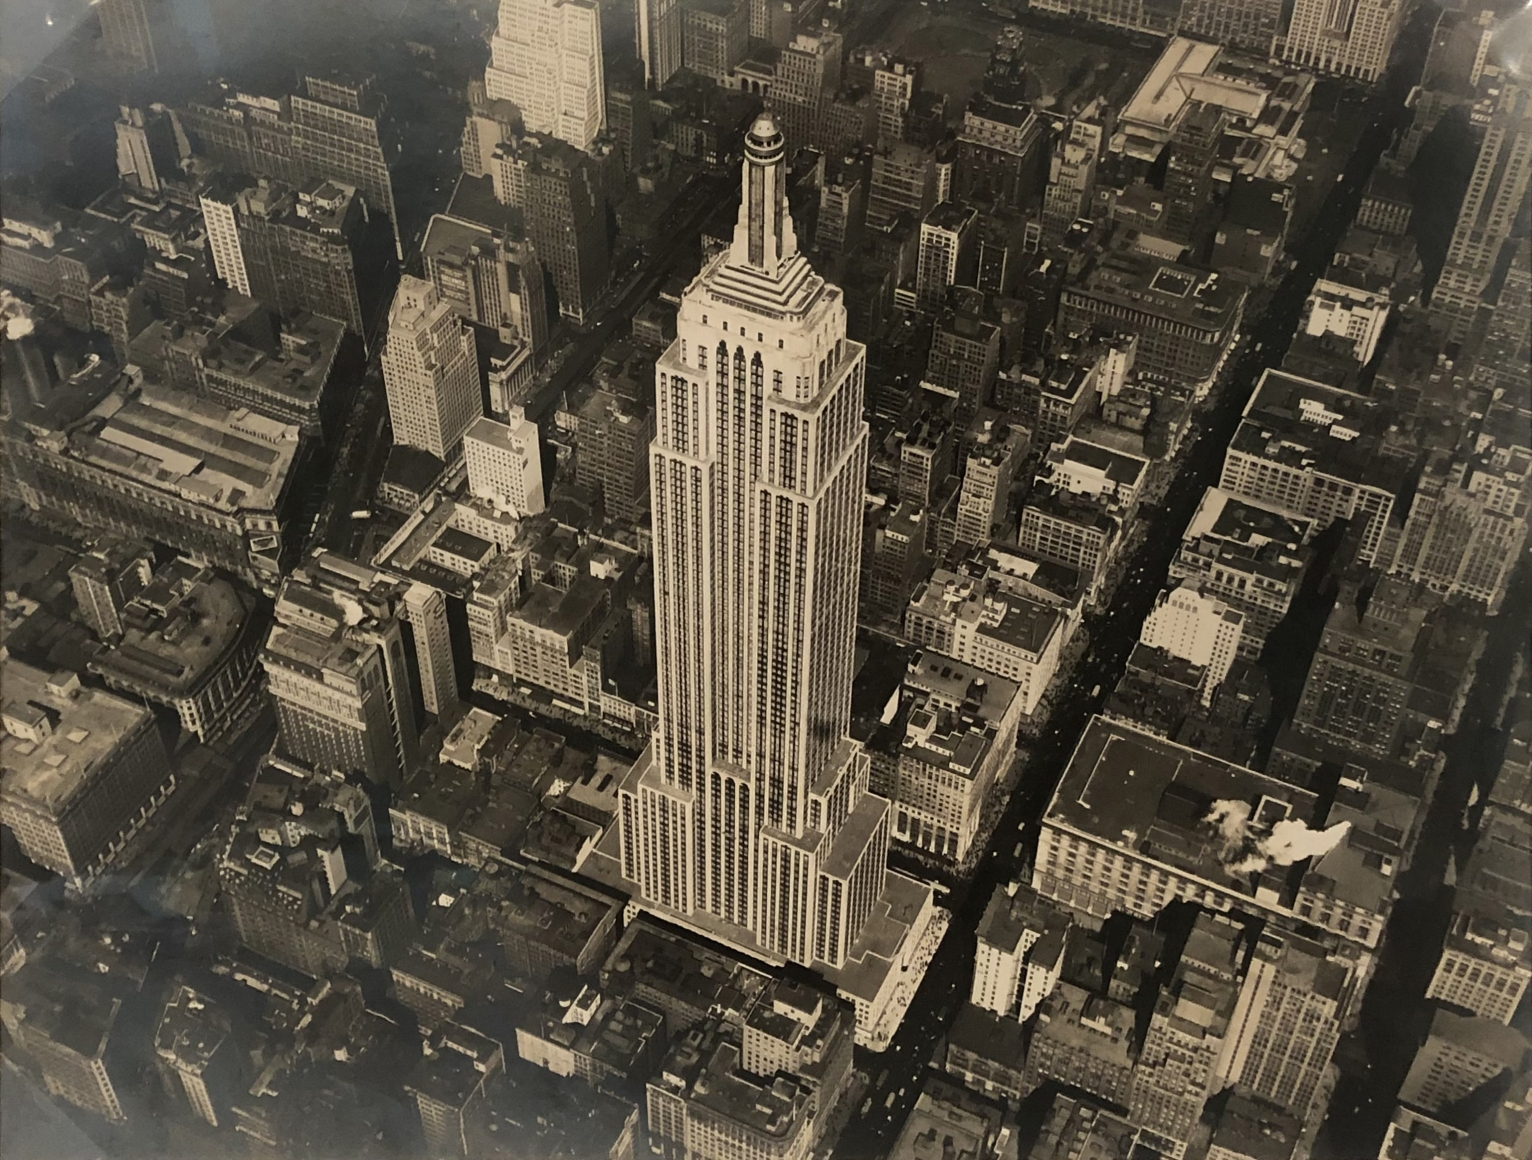 23. Fairchild Aerial Surveys, Empire State Building, 1931. Aerial view of the completed Empire State Building from above and to the right. The building occupies the center of the frame.